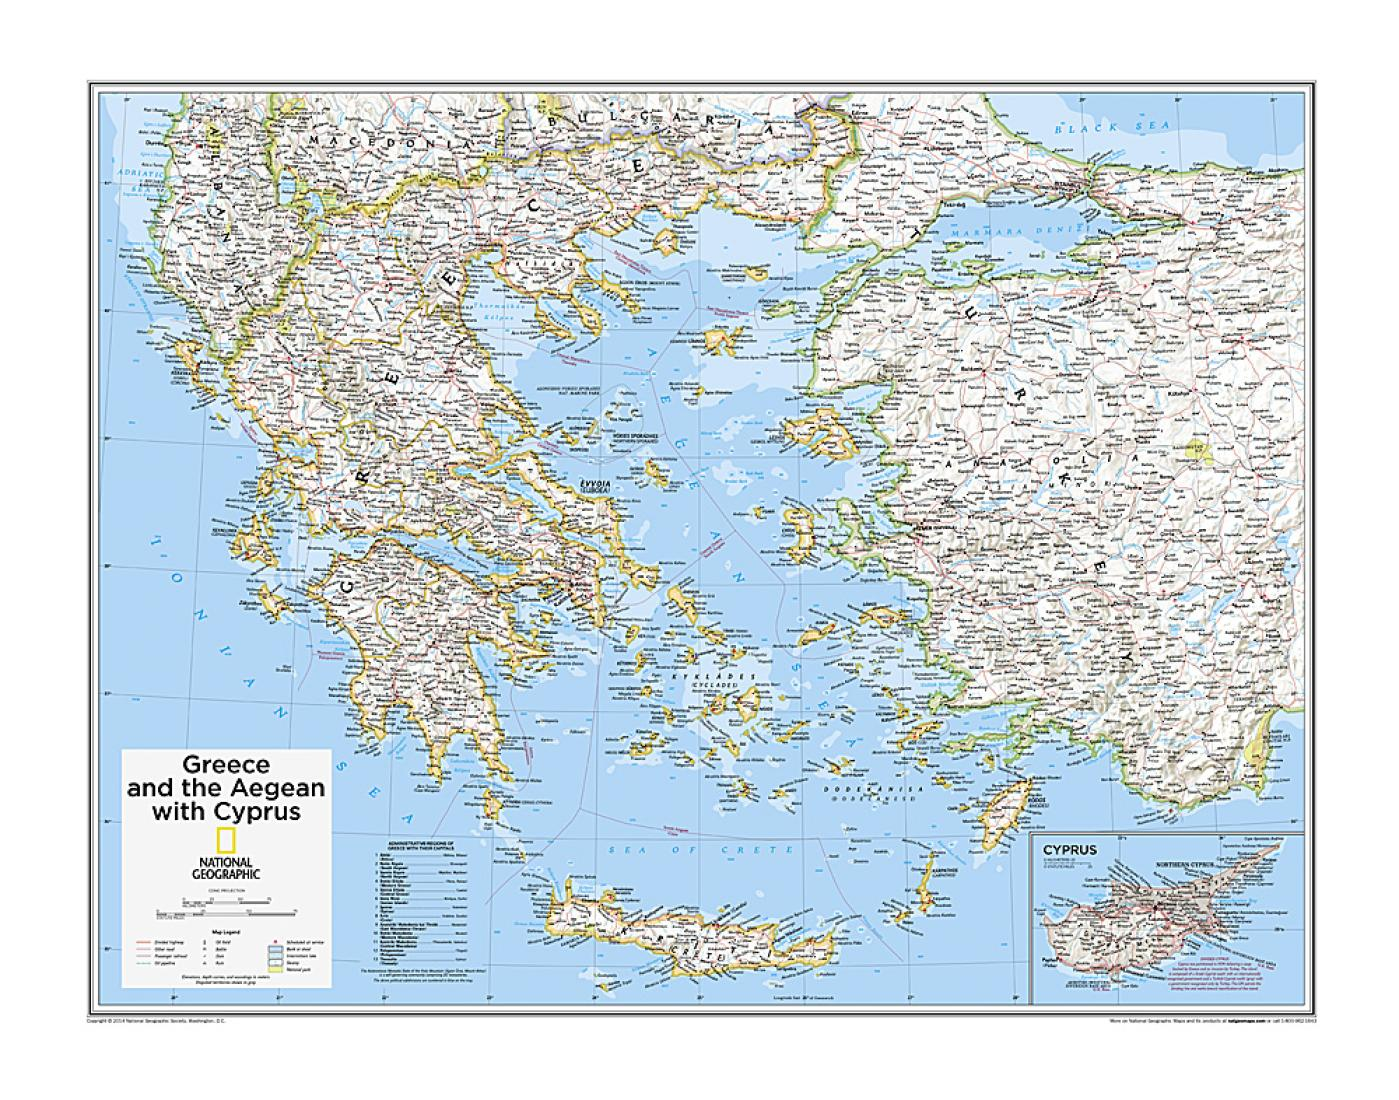 Picture of: Greece And The Aegean With Cyprus Map From National Geographic Atlas Of The World 10th Edition By National Geographic Maps